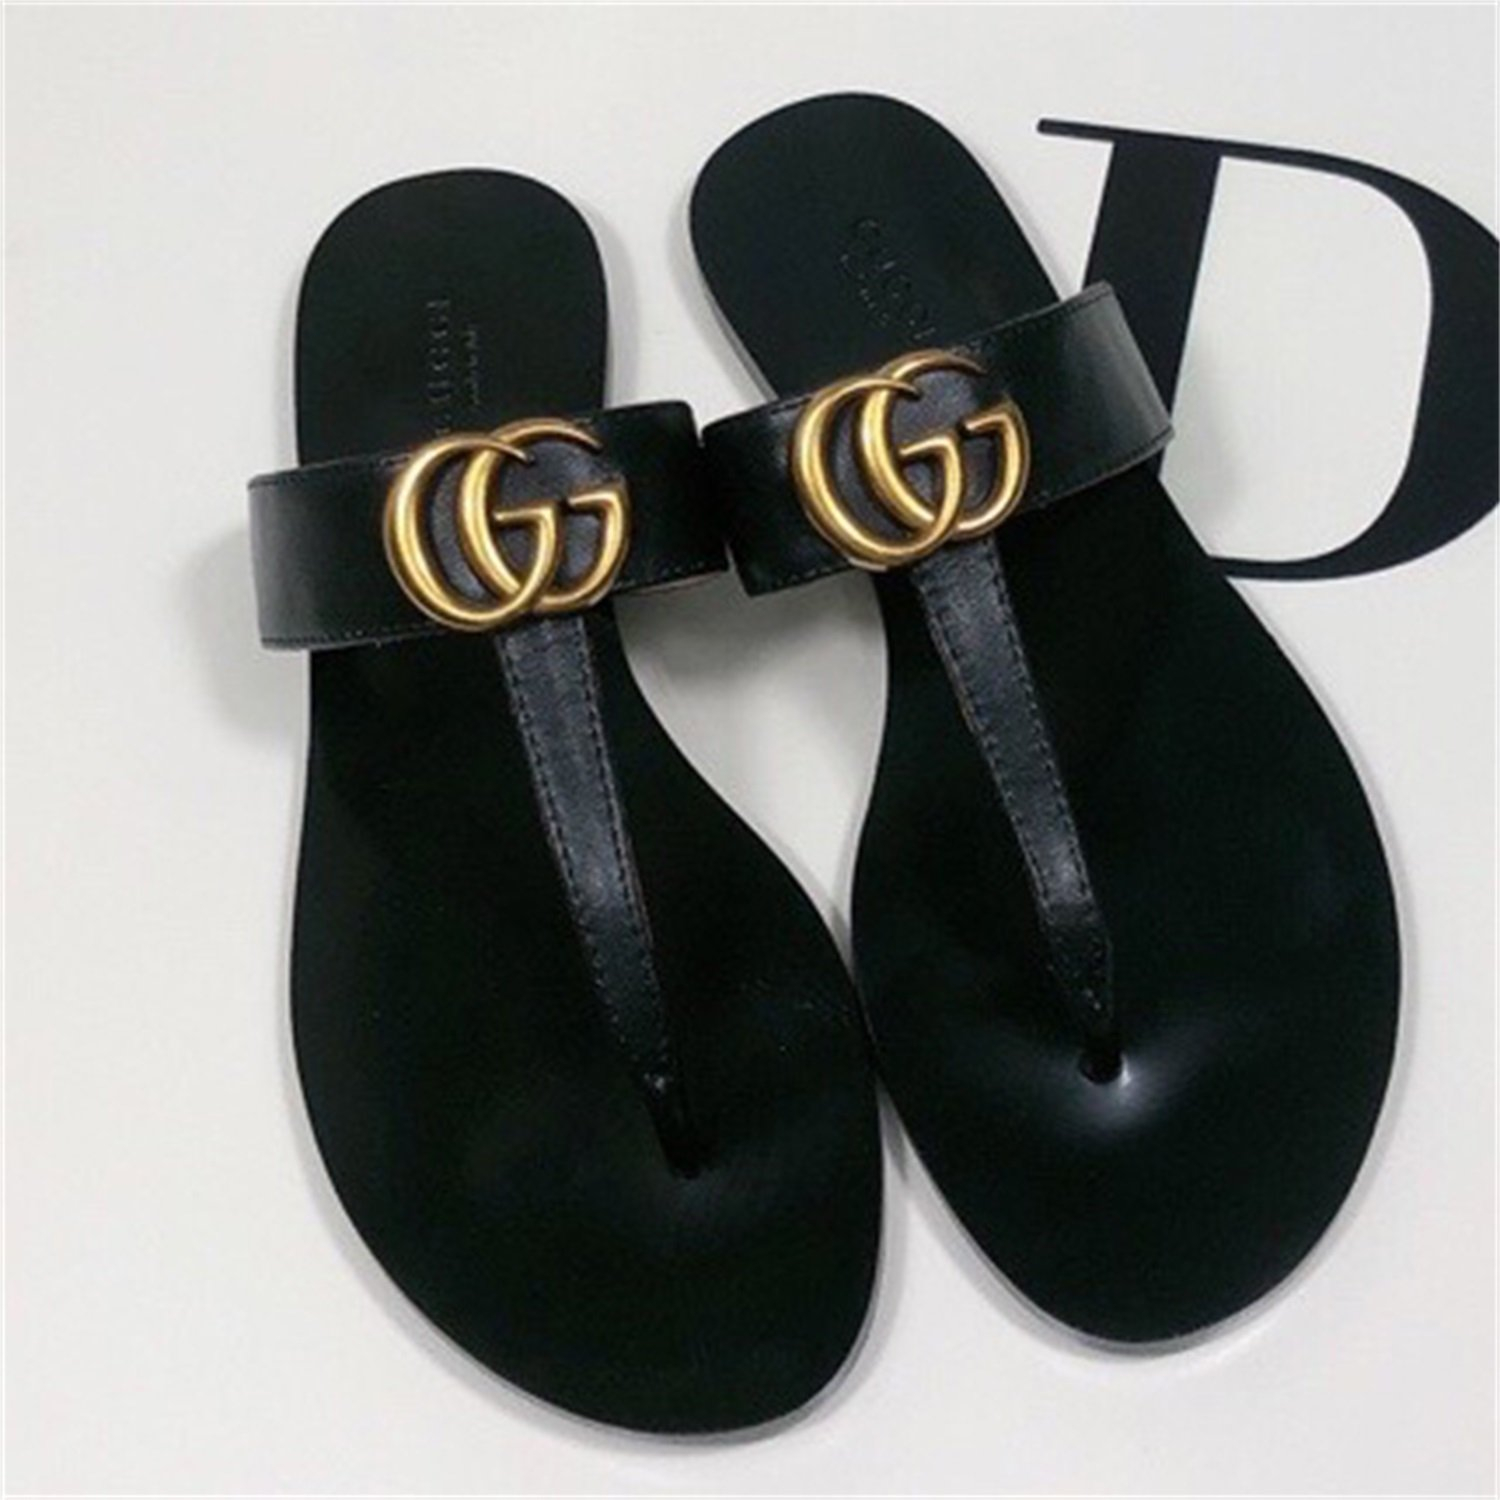 Image of GG women's double G flip flops slippers shoes